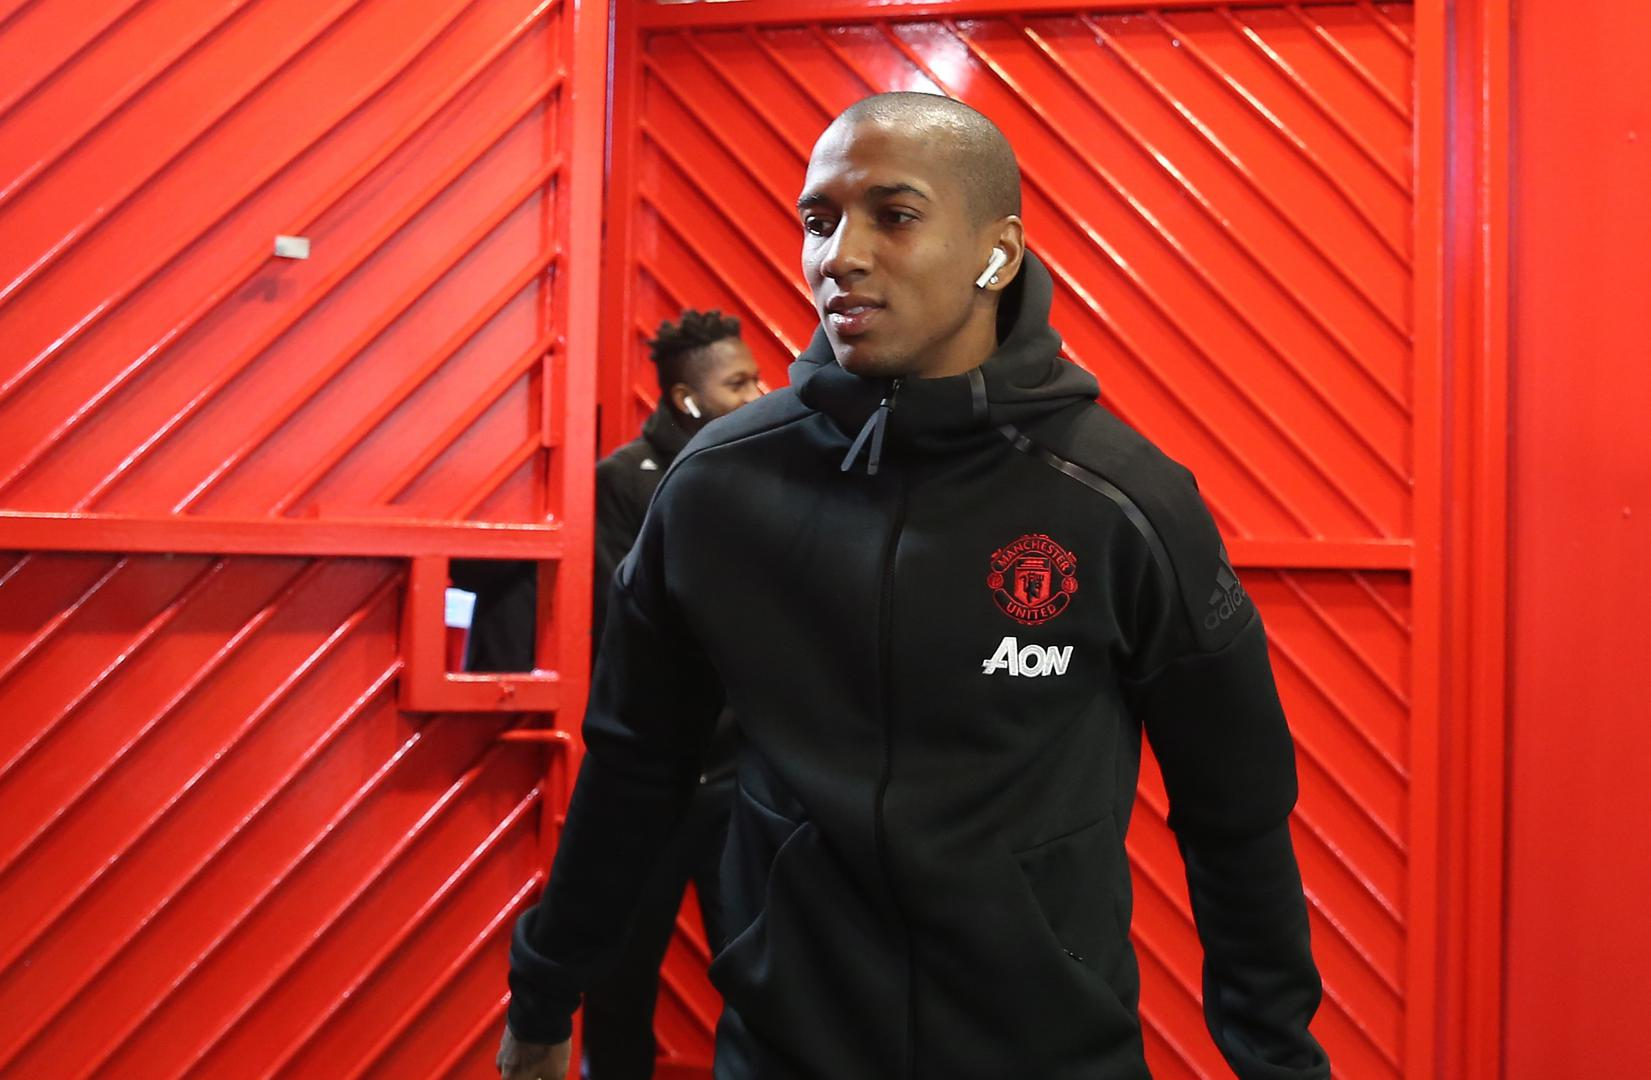 Ashley Young entering Old Trafford before a match.